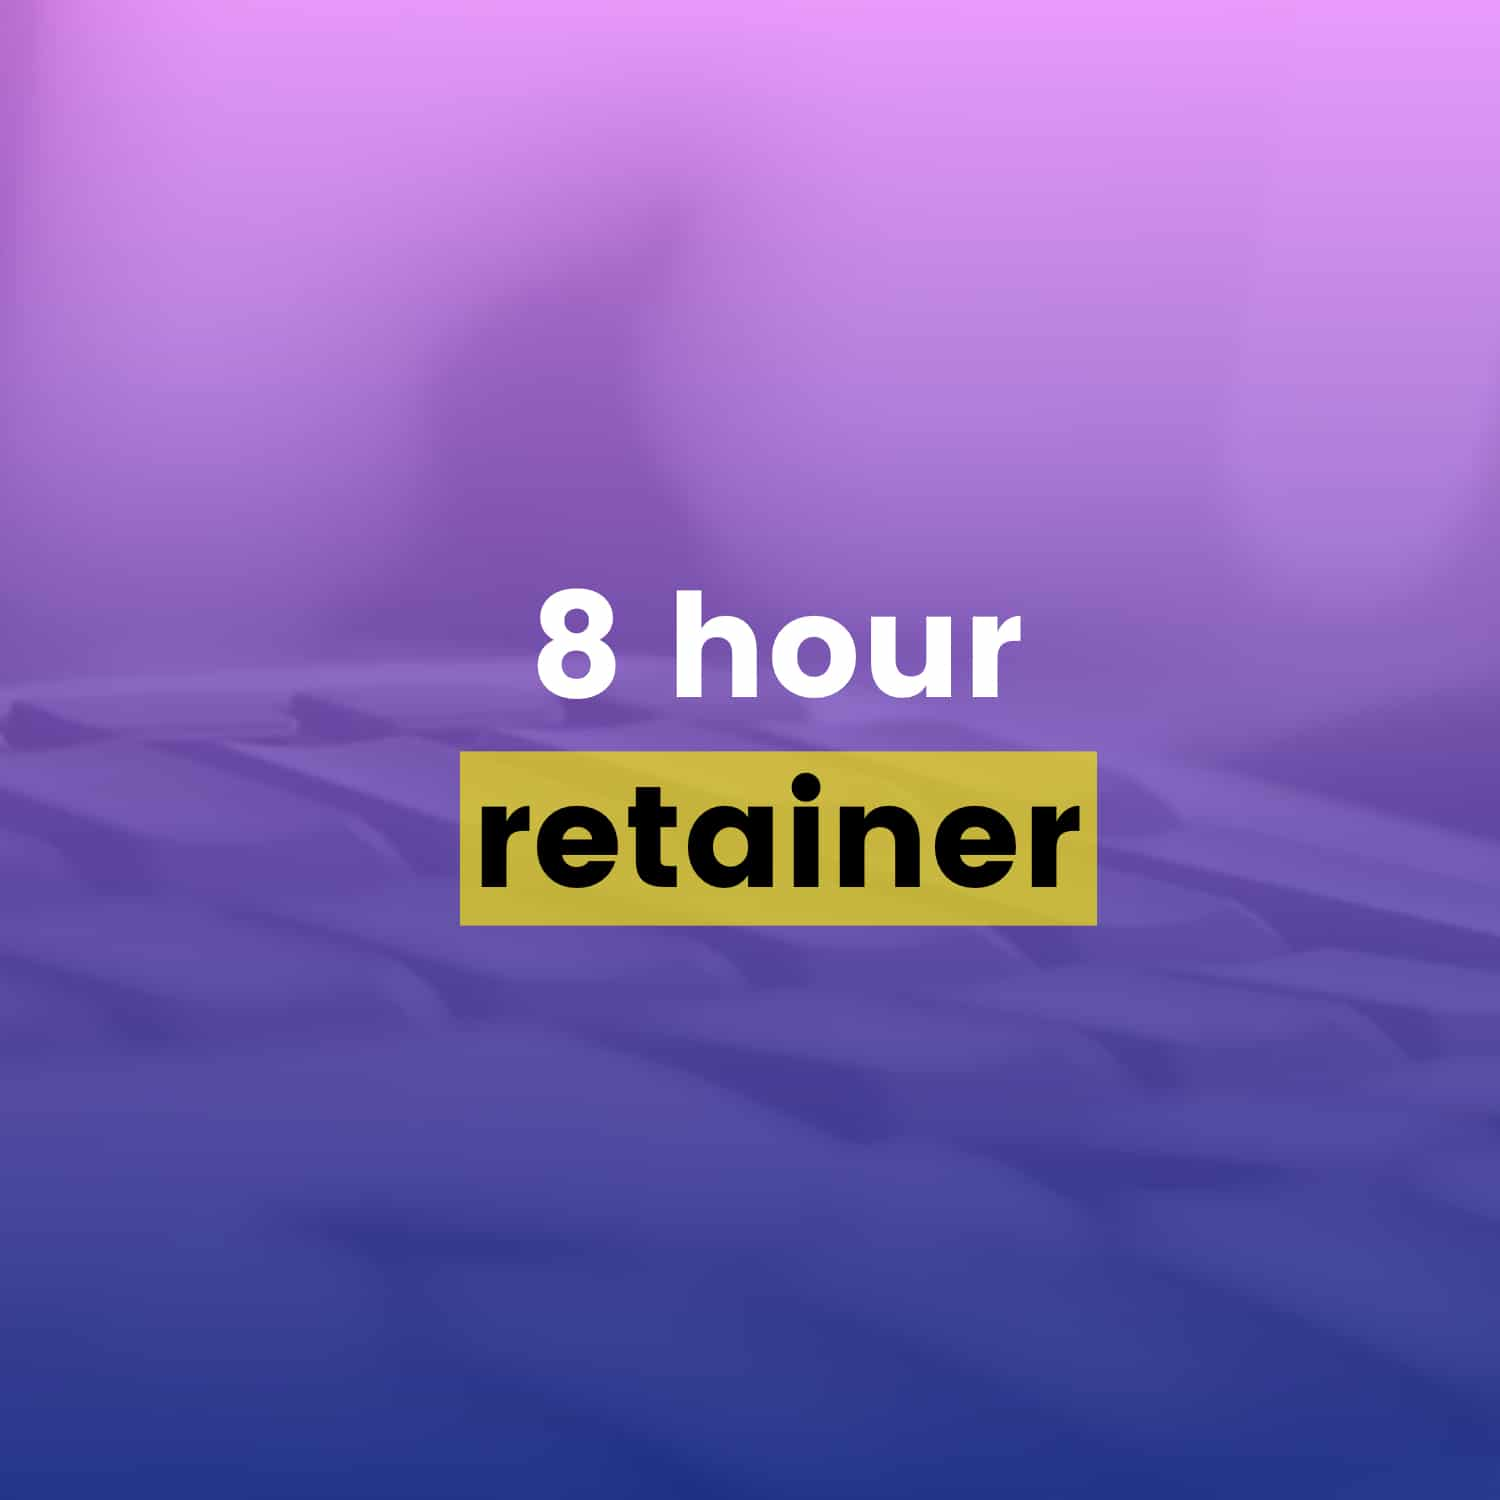 Drip Email Templates - 8 Hour Retainer